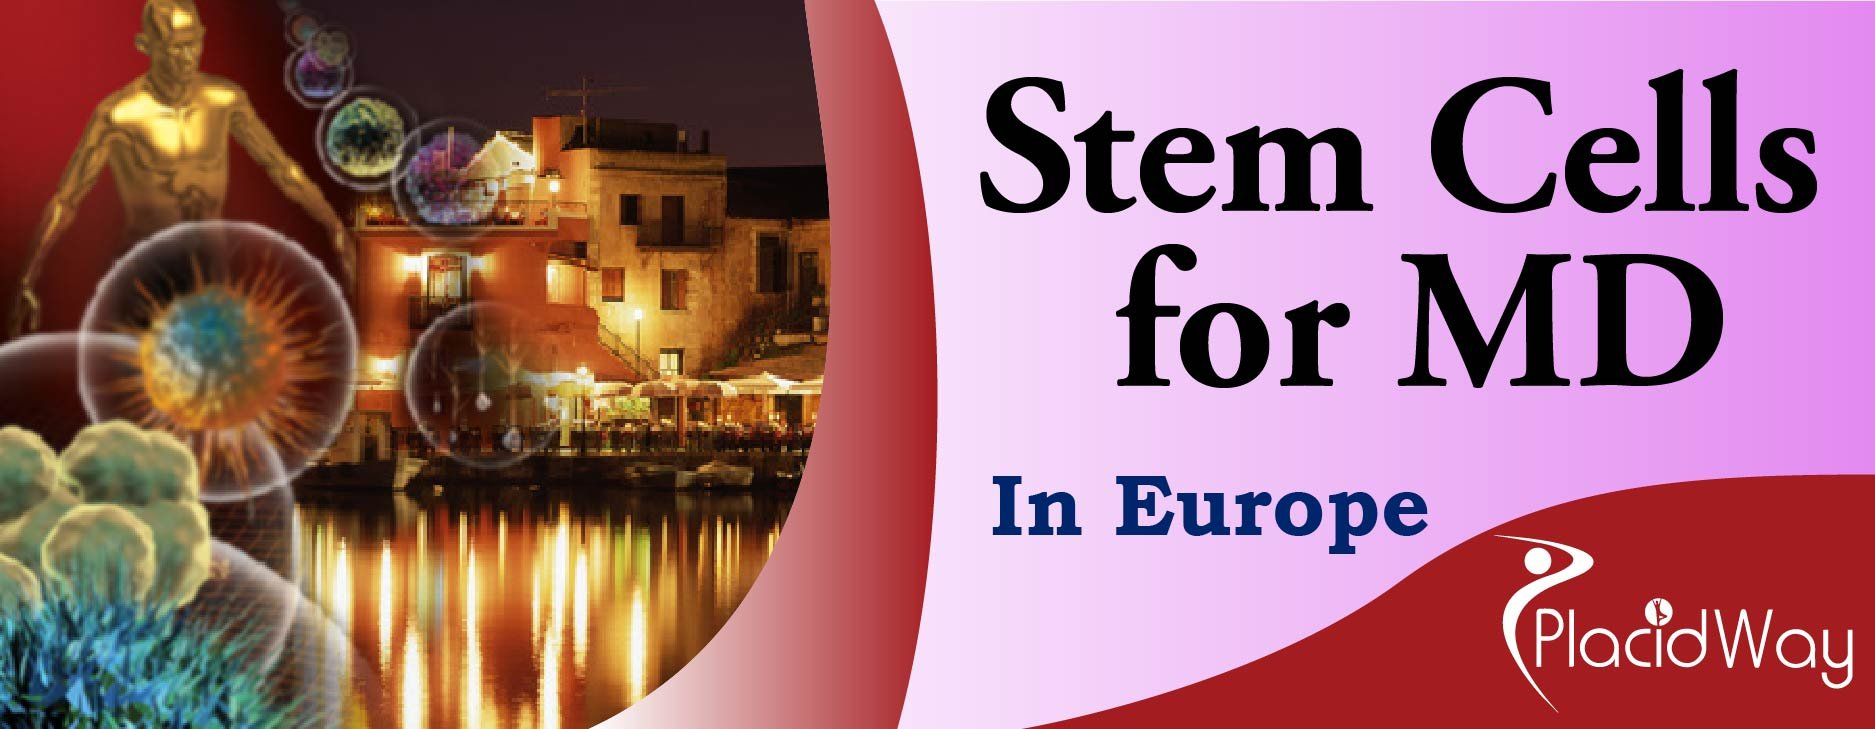 Best Muscular Dystrophy Treatments in Europe, Stem Cell Muscle Therapy